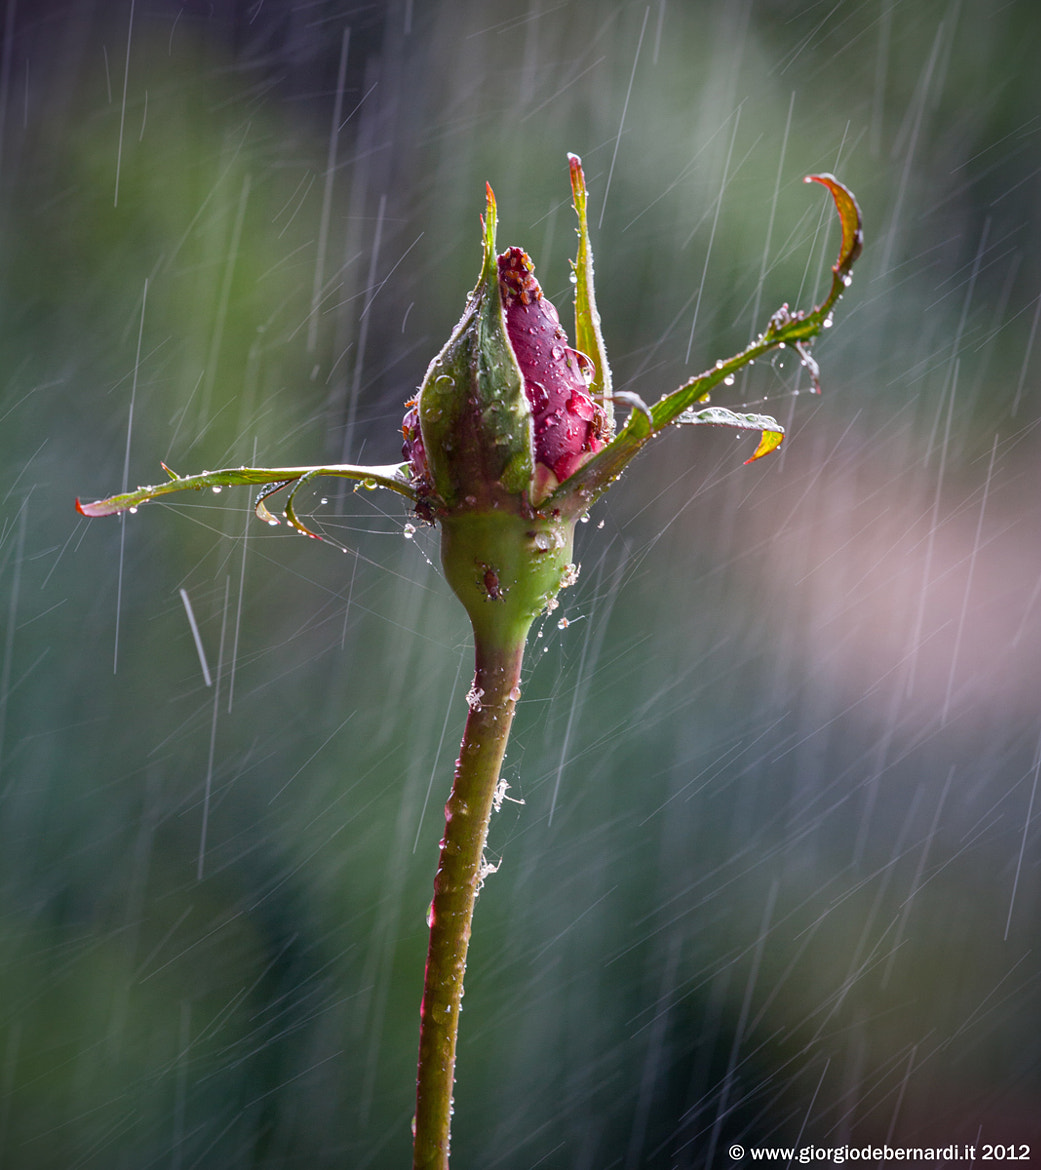 Photograph Rose in the rain by giorgio debernardi on 500px